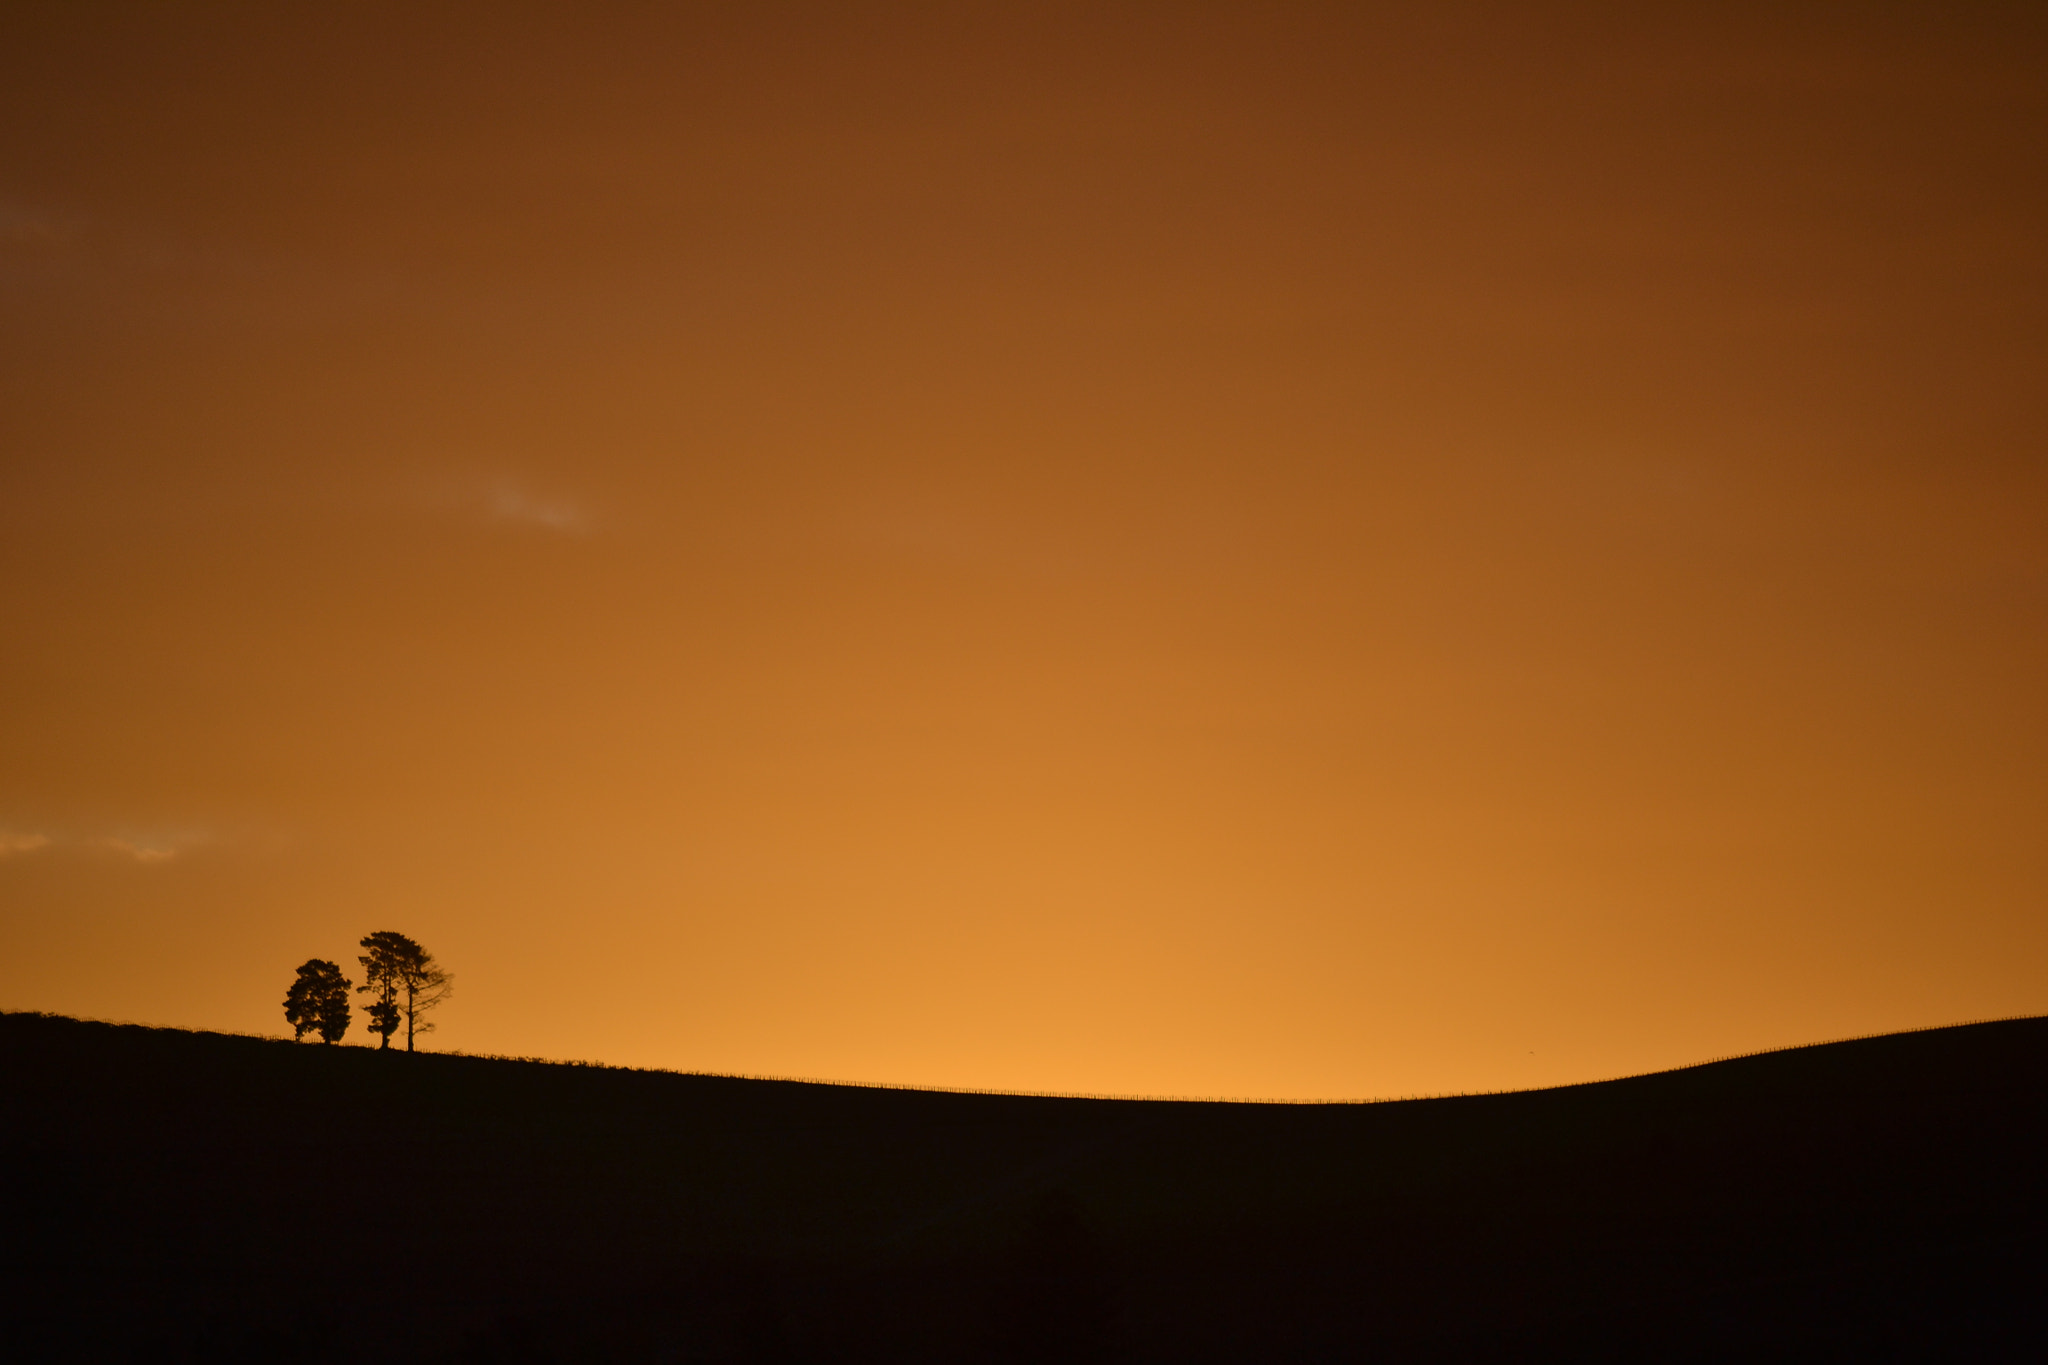 Photograph The Hills Part 2: Sunset by Charl de Waal on 500px